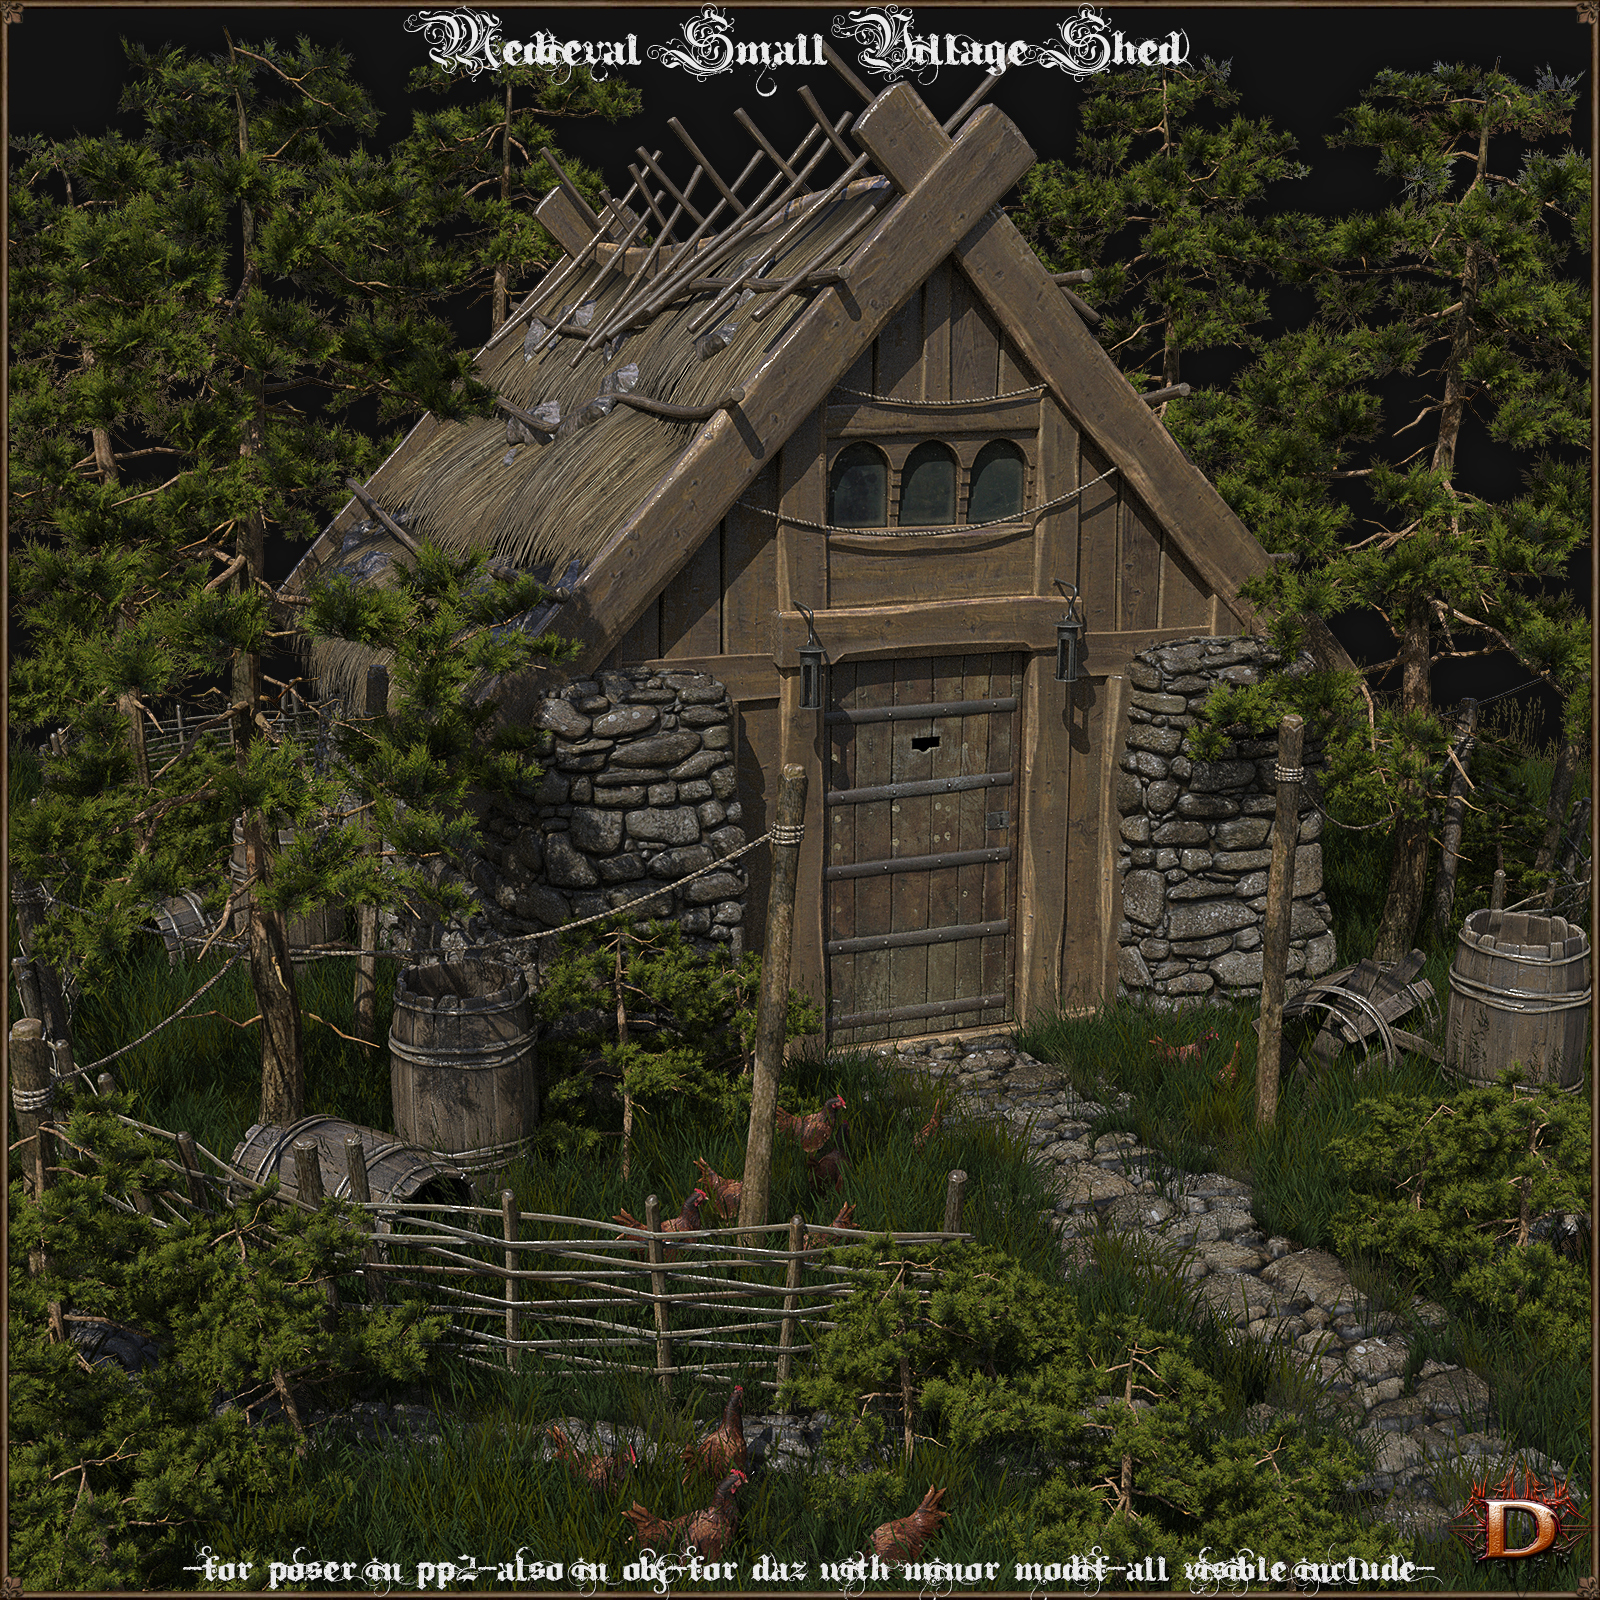 Medieval Small Village Shed